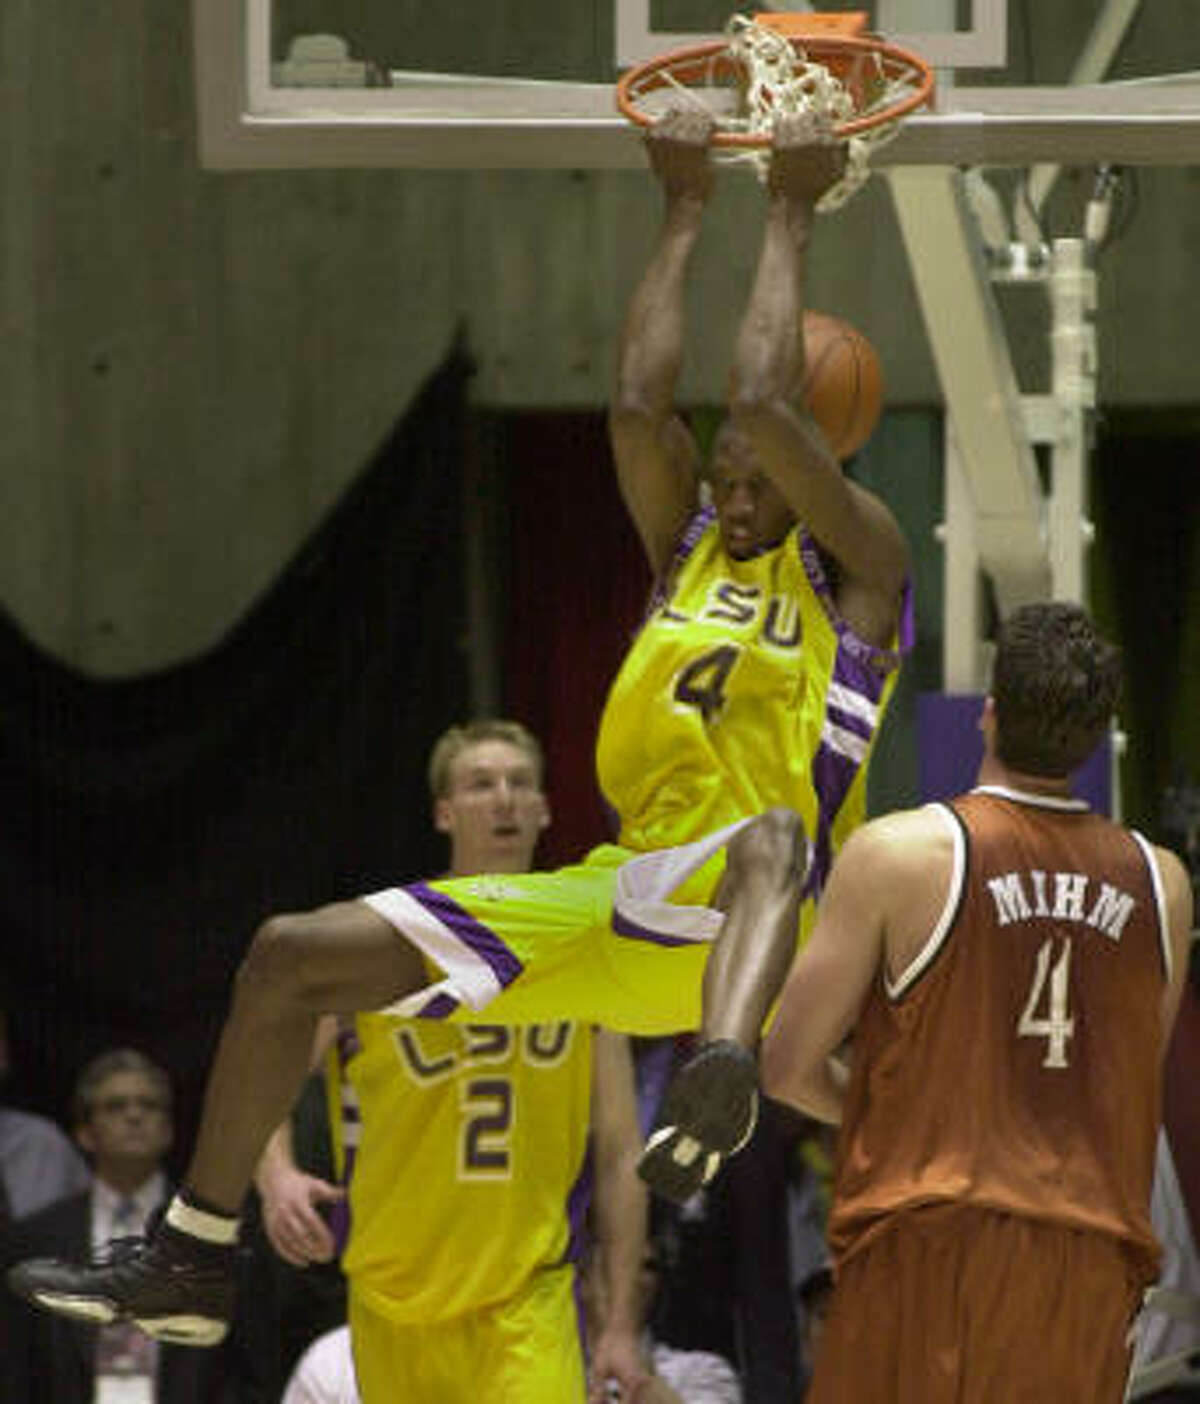 In 2000, the Longhorns lost to LSU 72-67 in the second round of the West Regional.